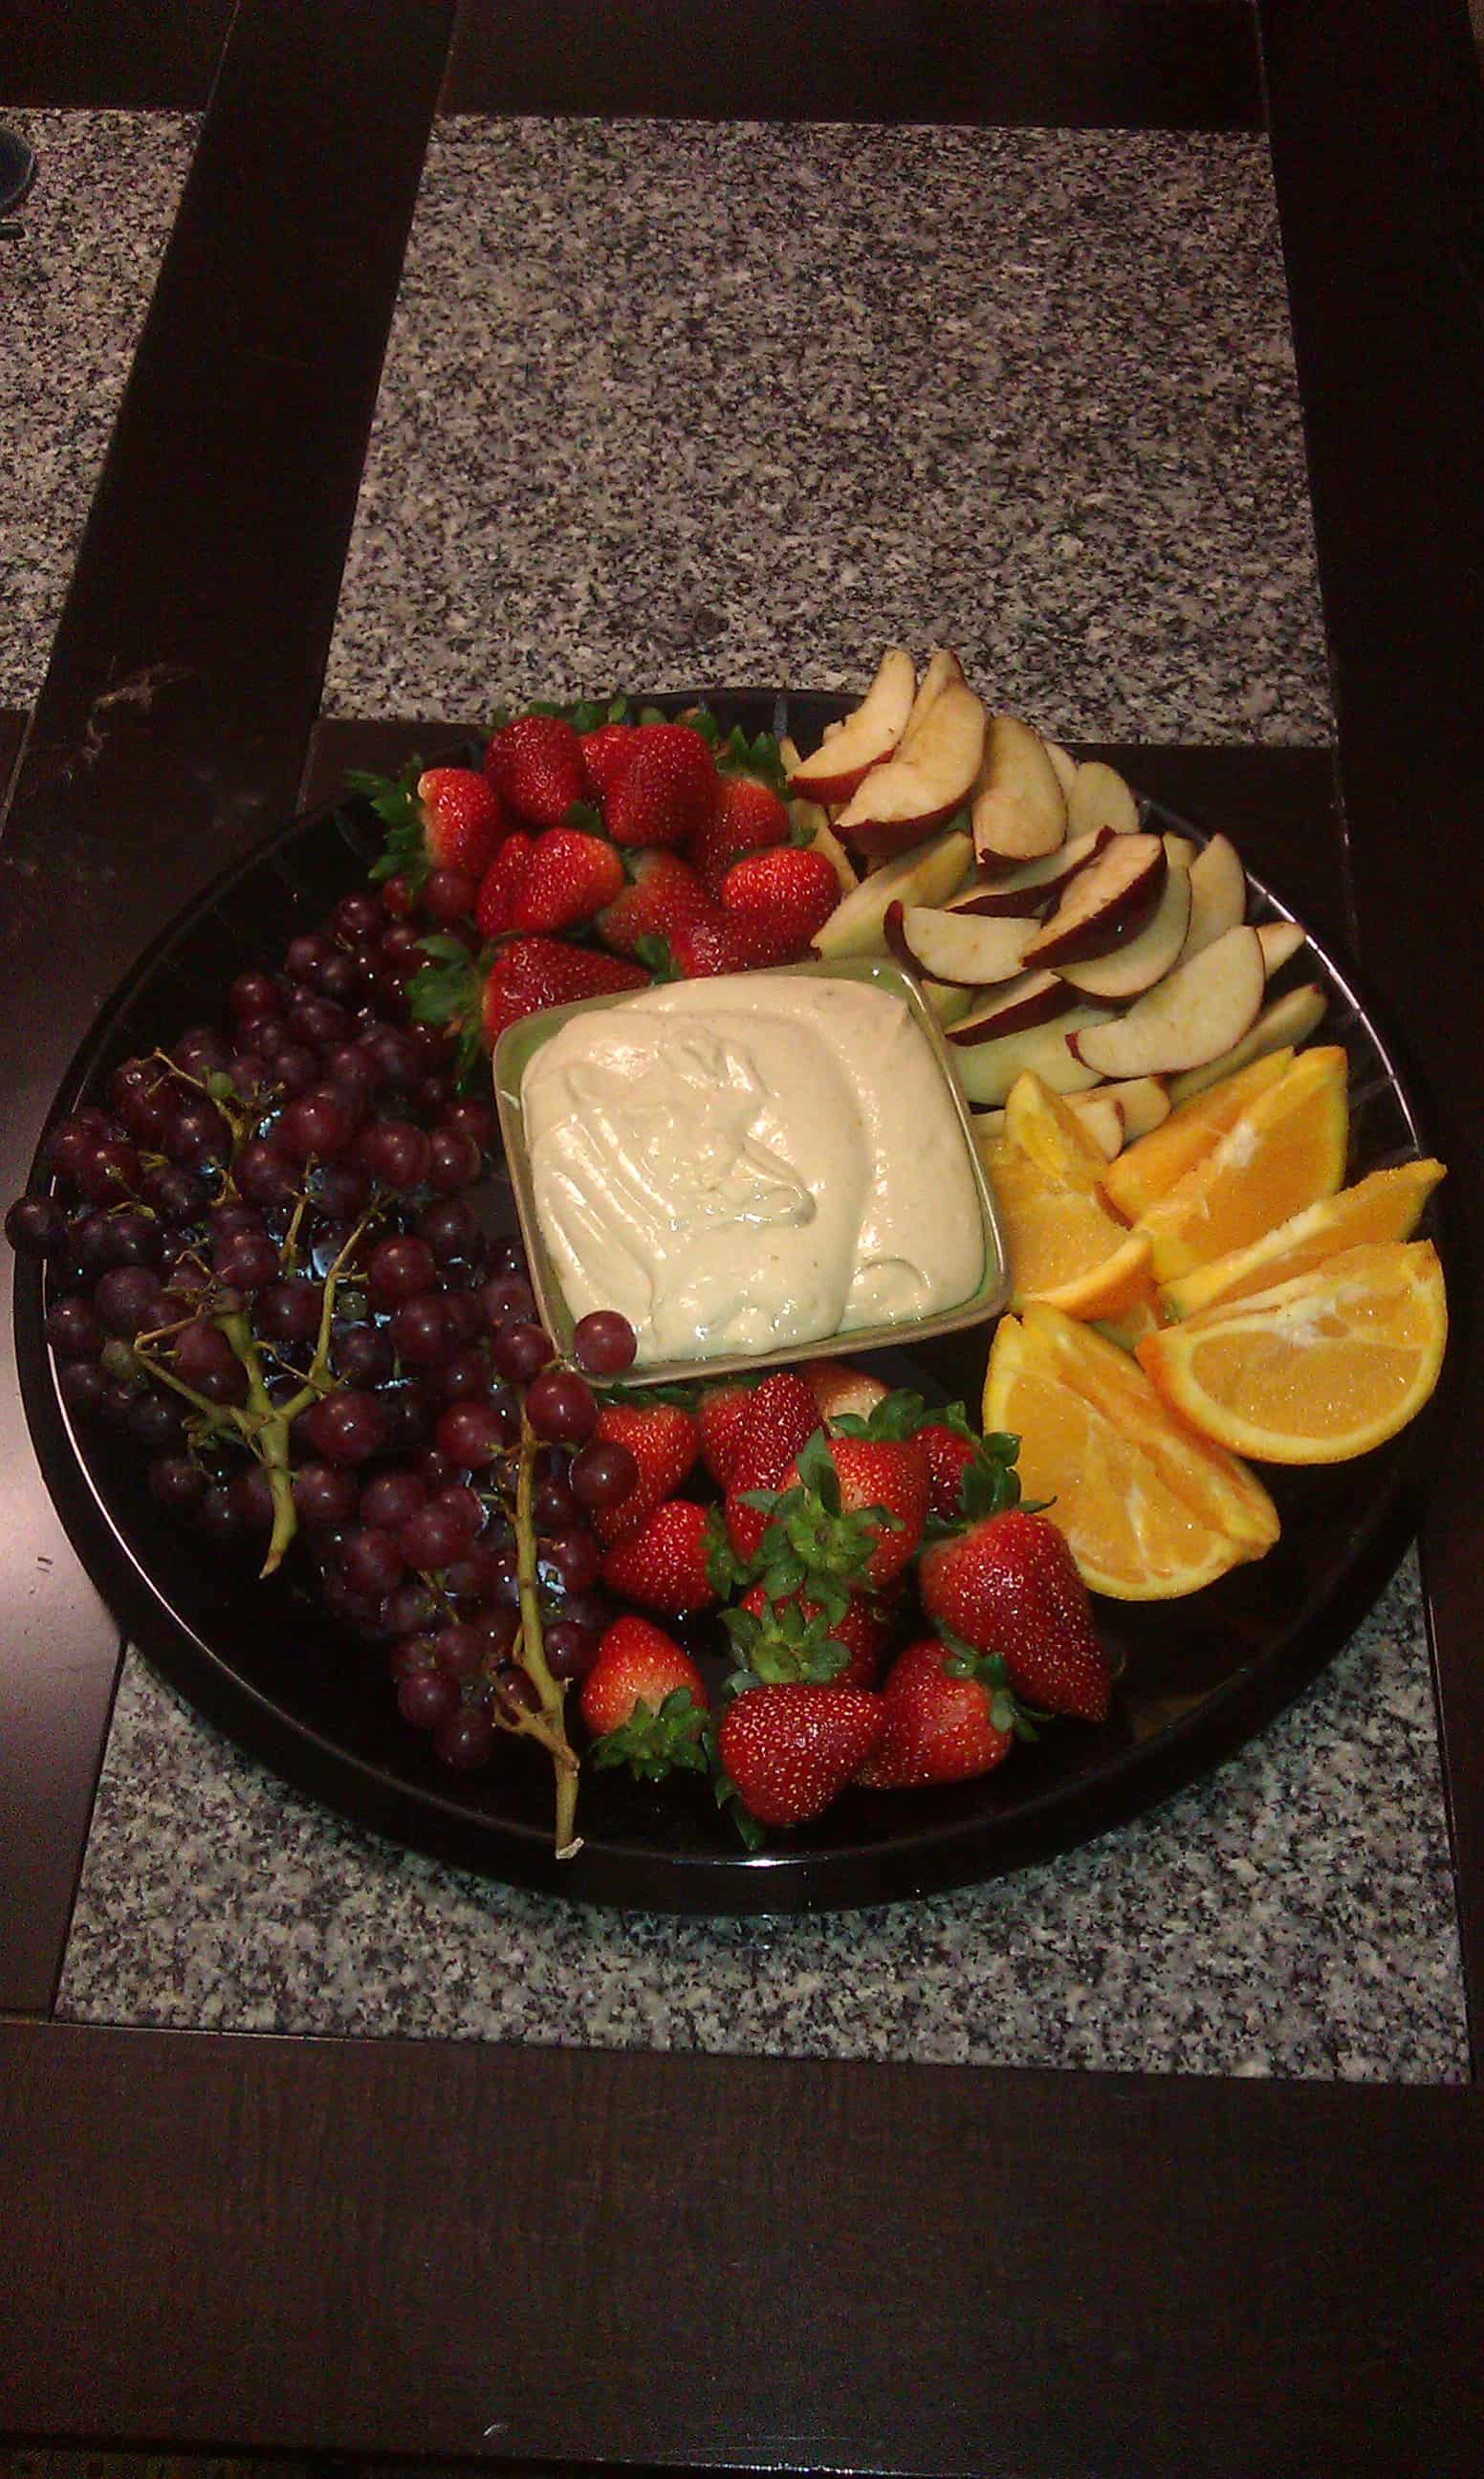 Superbowl Party Trays: Can You Save Money By Making Your Own